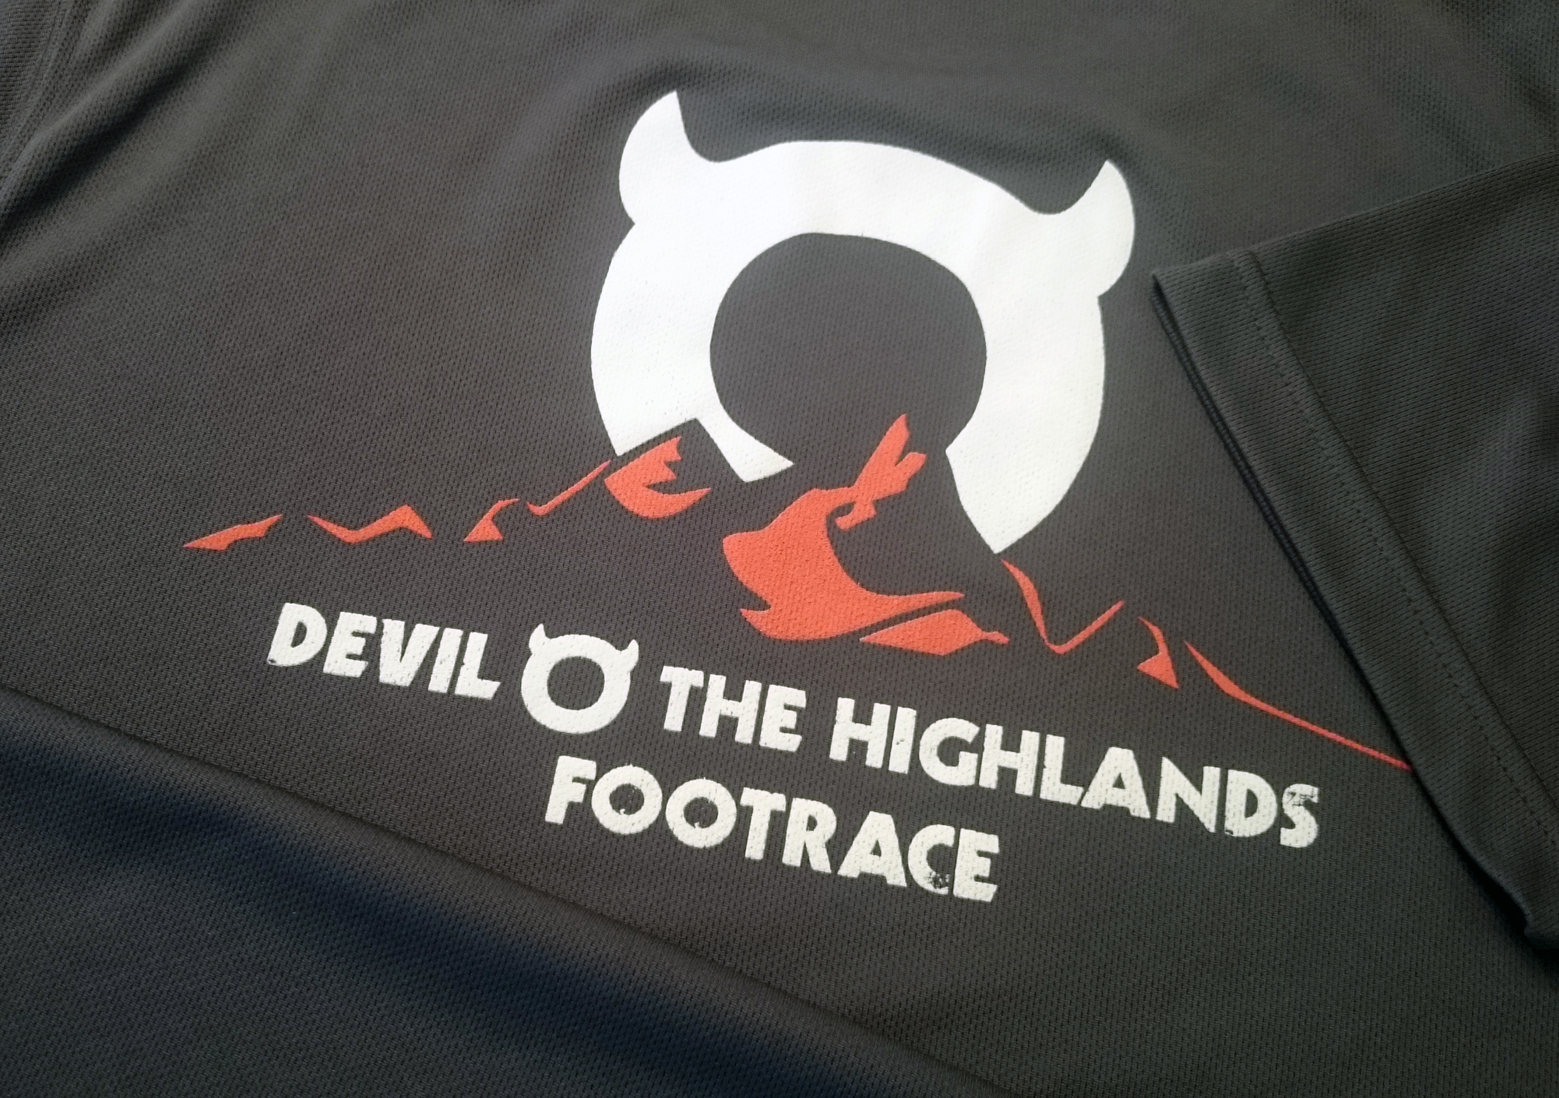 Devil O' The Highlands Footrace